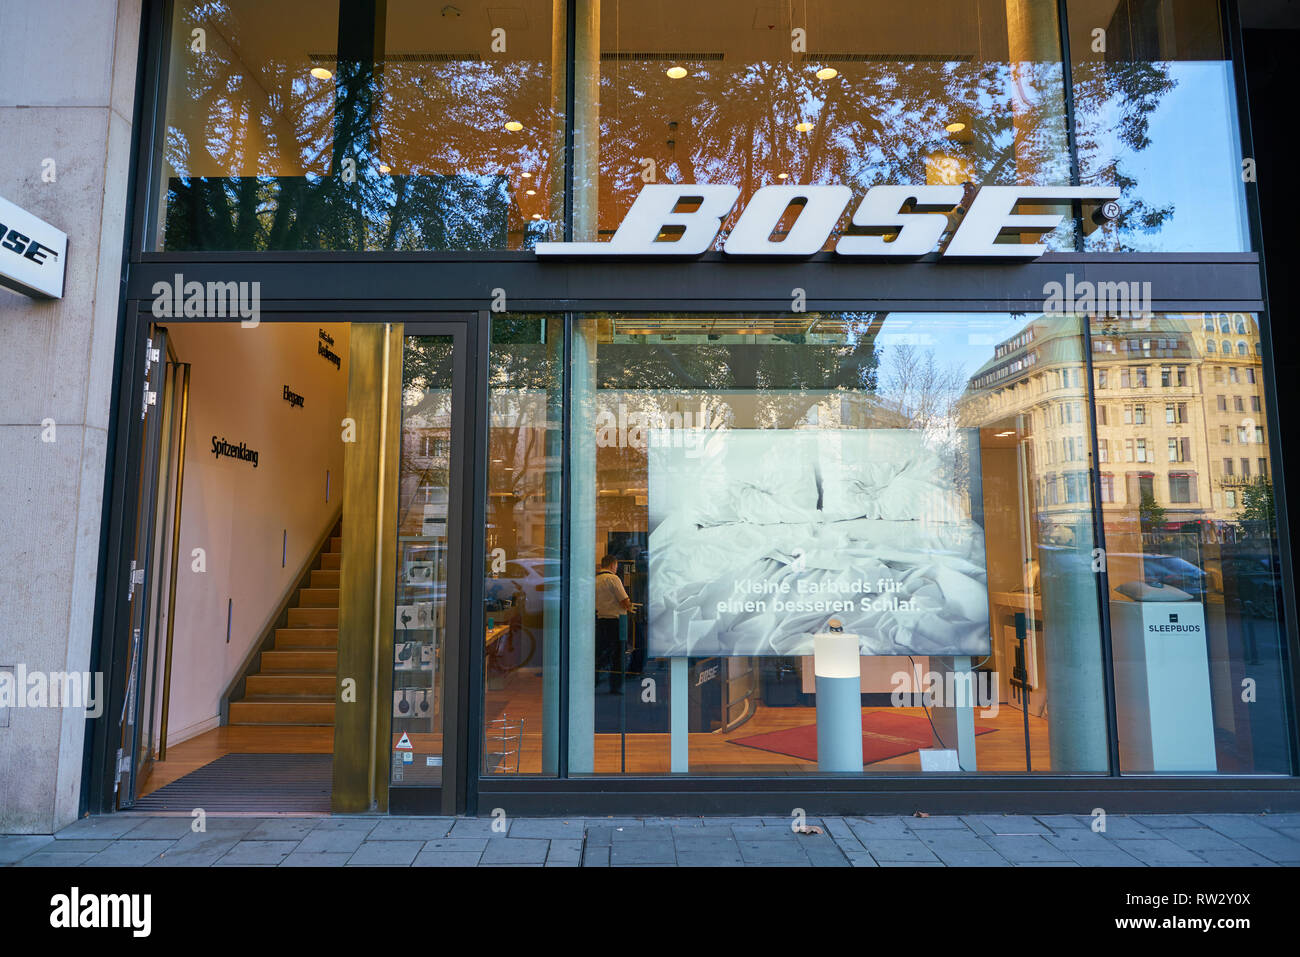 DUSSELDORF, GERMANY - CIRCA SEPTEMBER, 2018: entrance to Bose store in Dusseldorf. - Stock Image